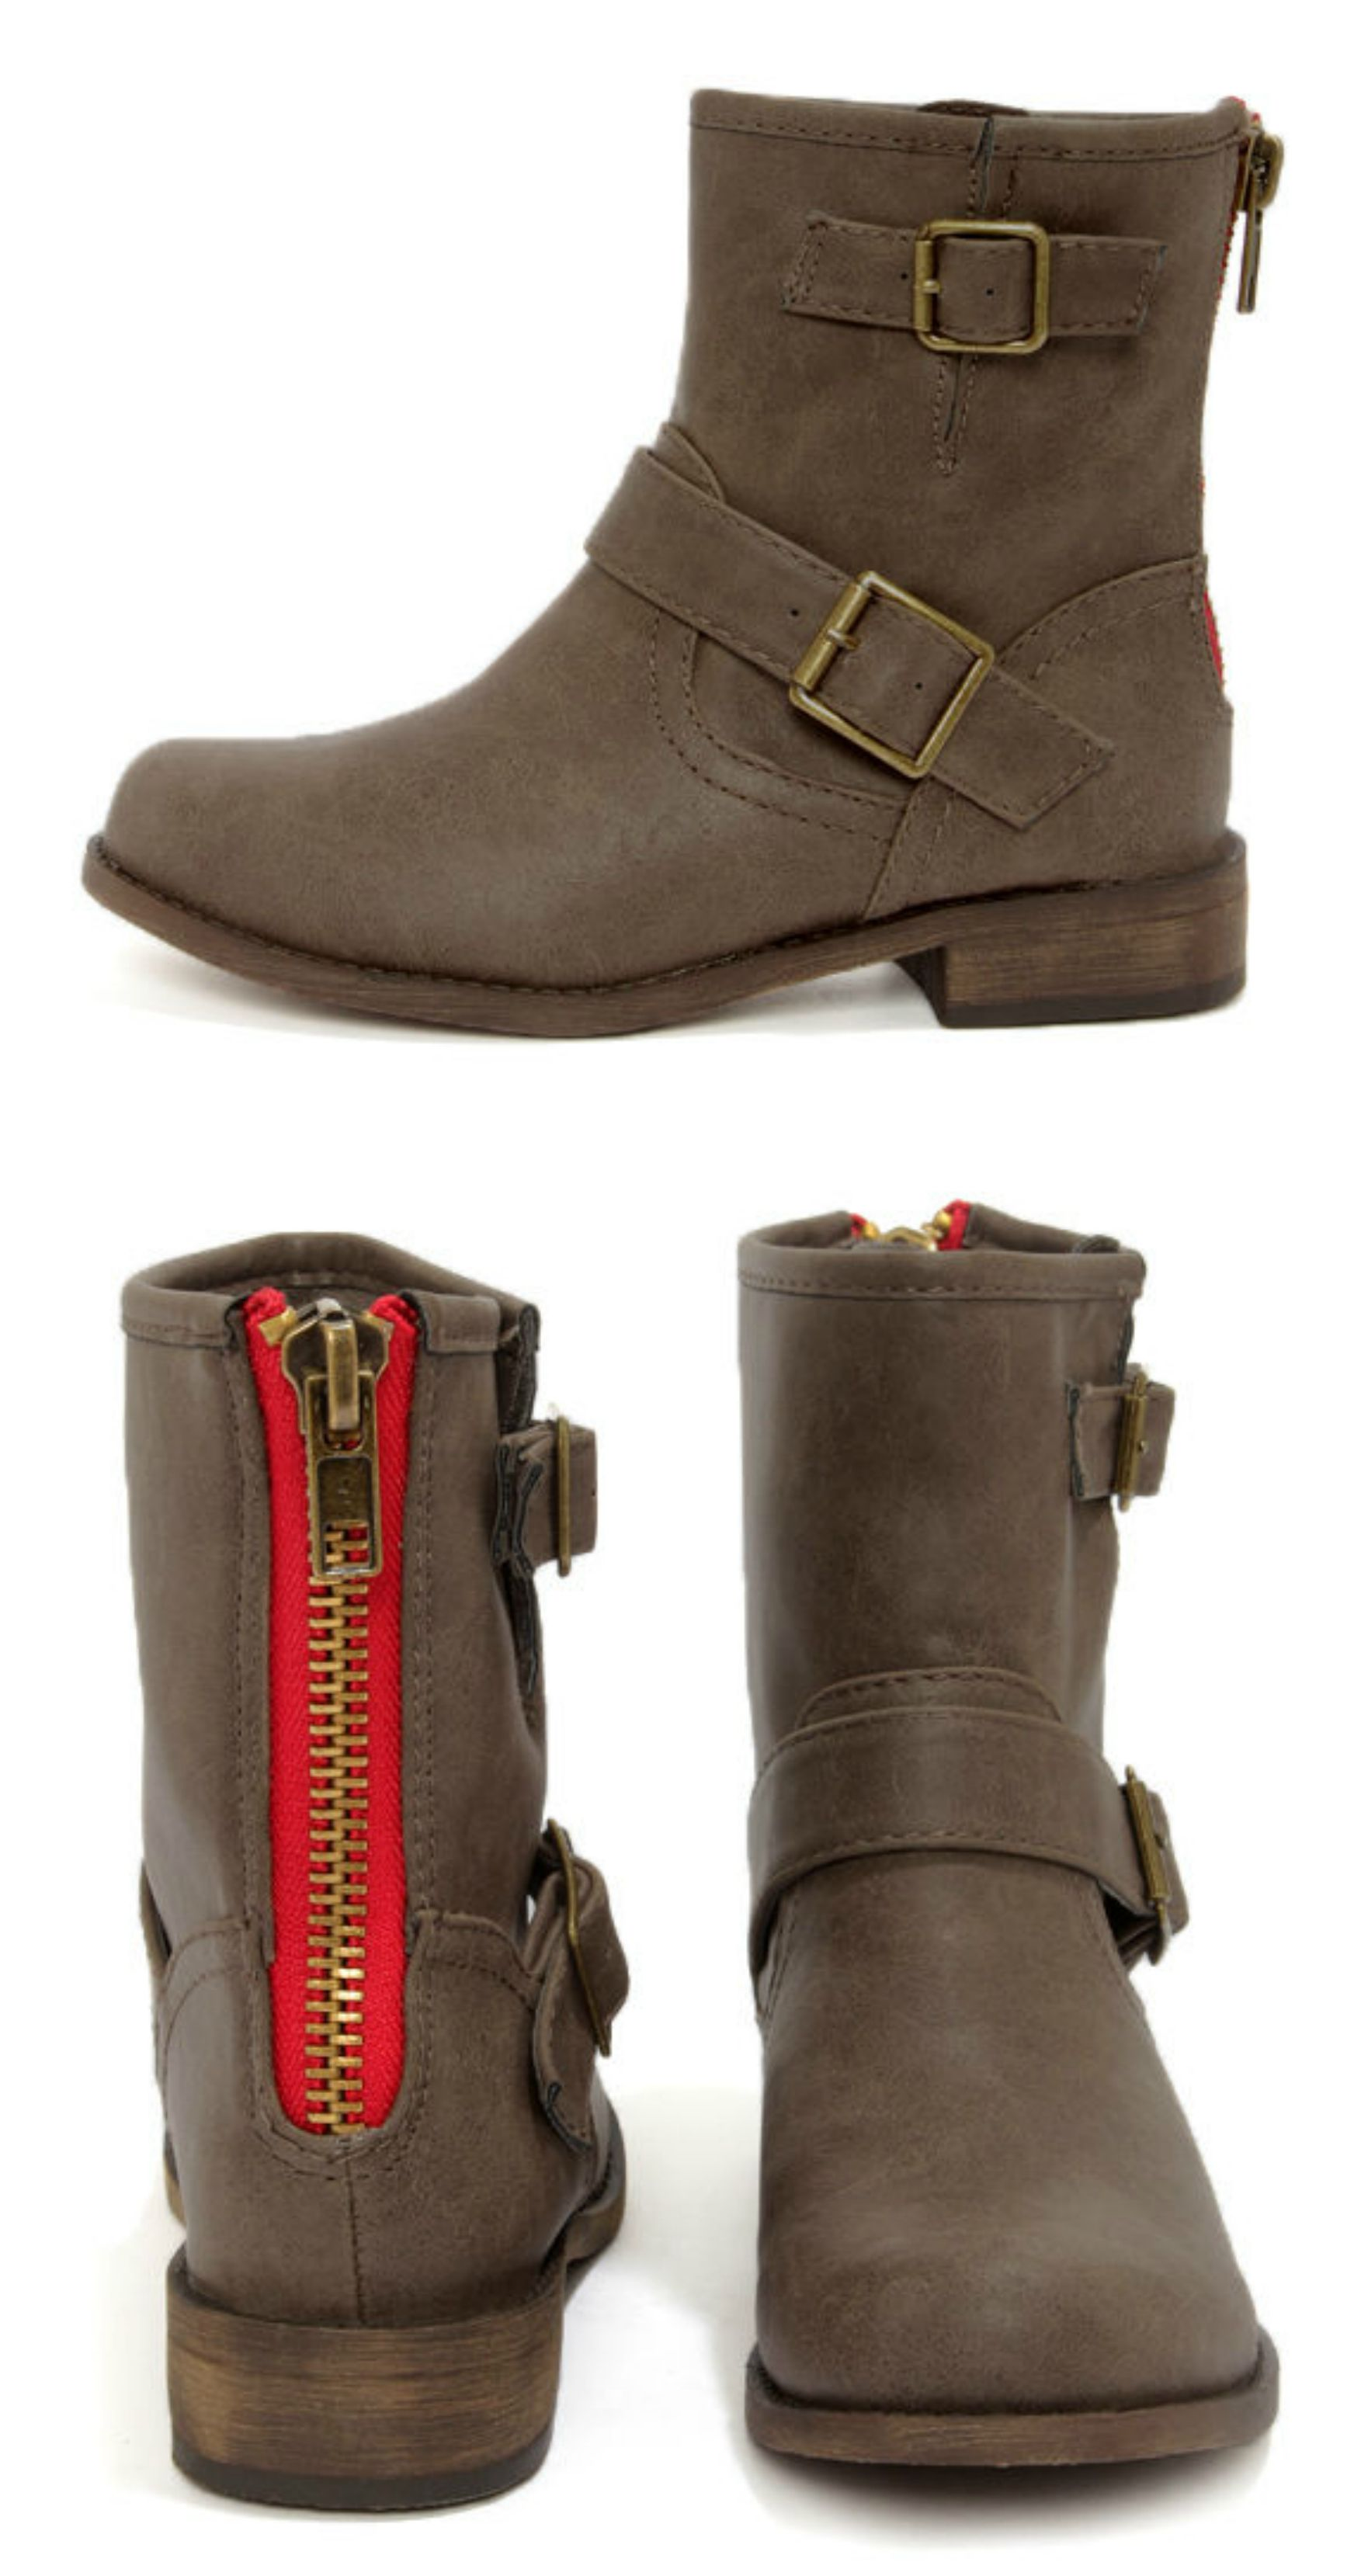 Fresno 11 Taupe Buckled Mid-Calf Boots. Winter Boots SaleWinter ShoesTall  Winter BootsBoots For SaleSnow BootsUgg ...